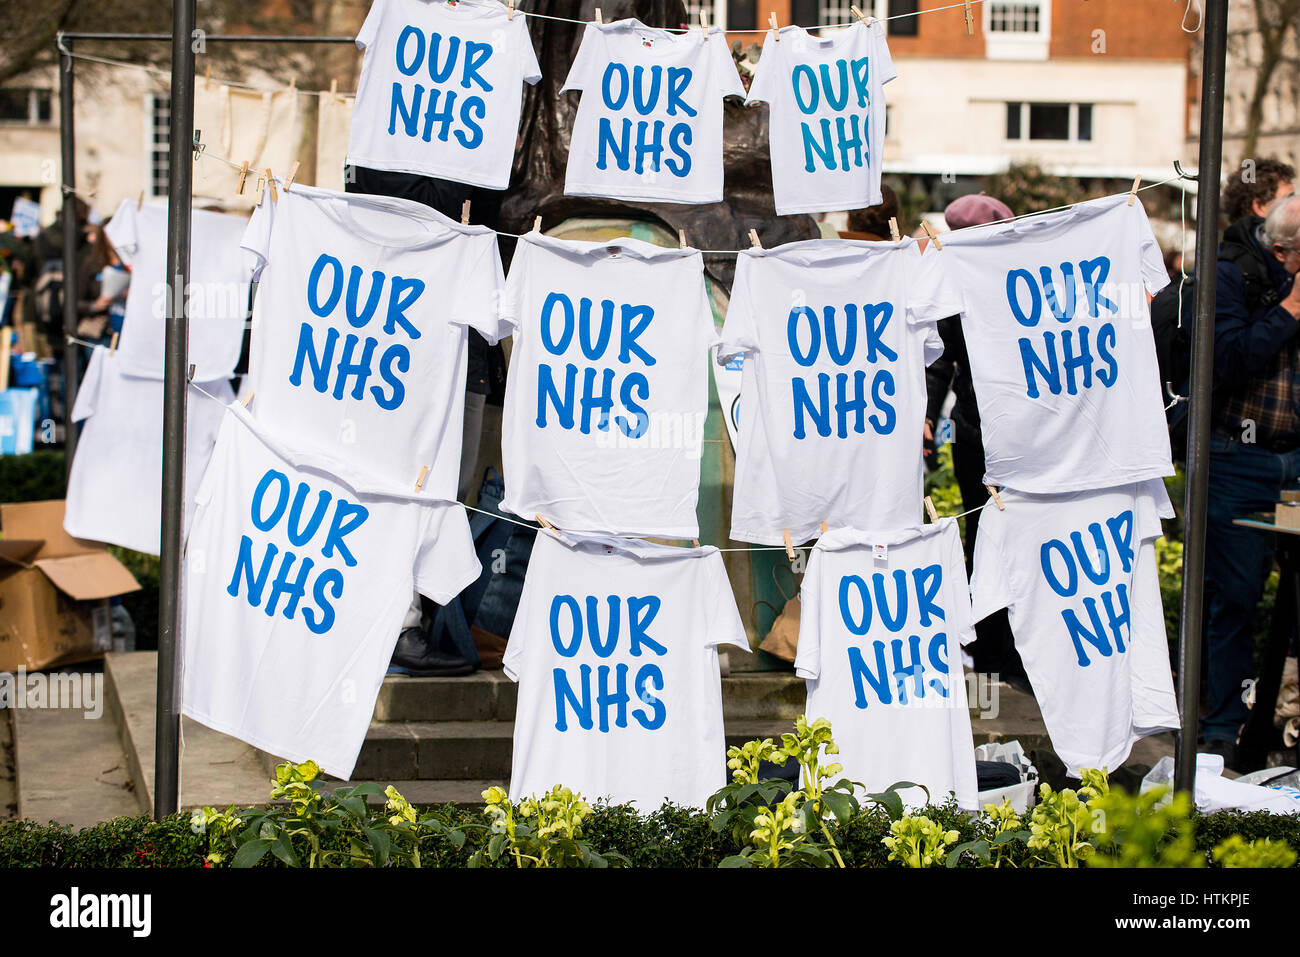 # OUR NHS rally - Thousands turn out for the national demonstration in London, to defend the NHS against government - Stock Image